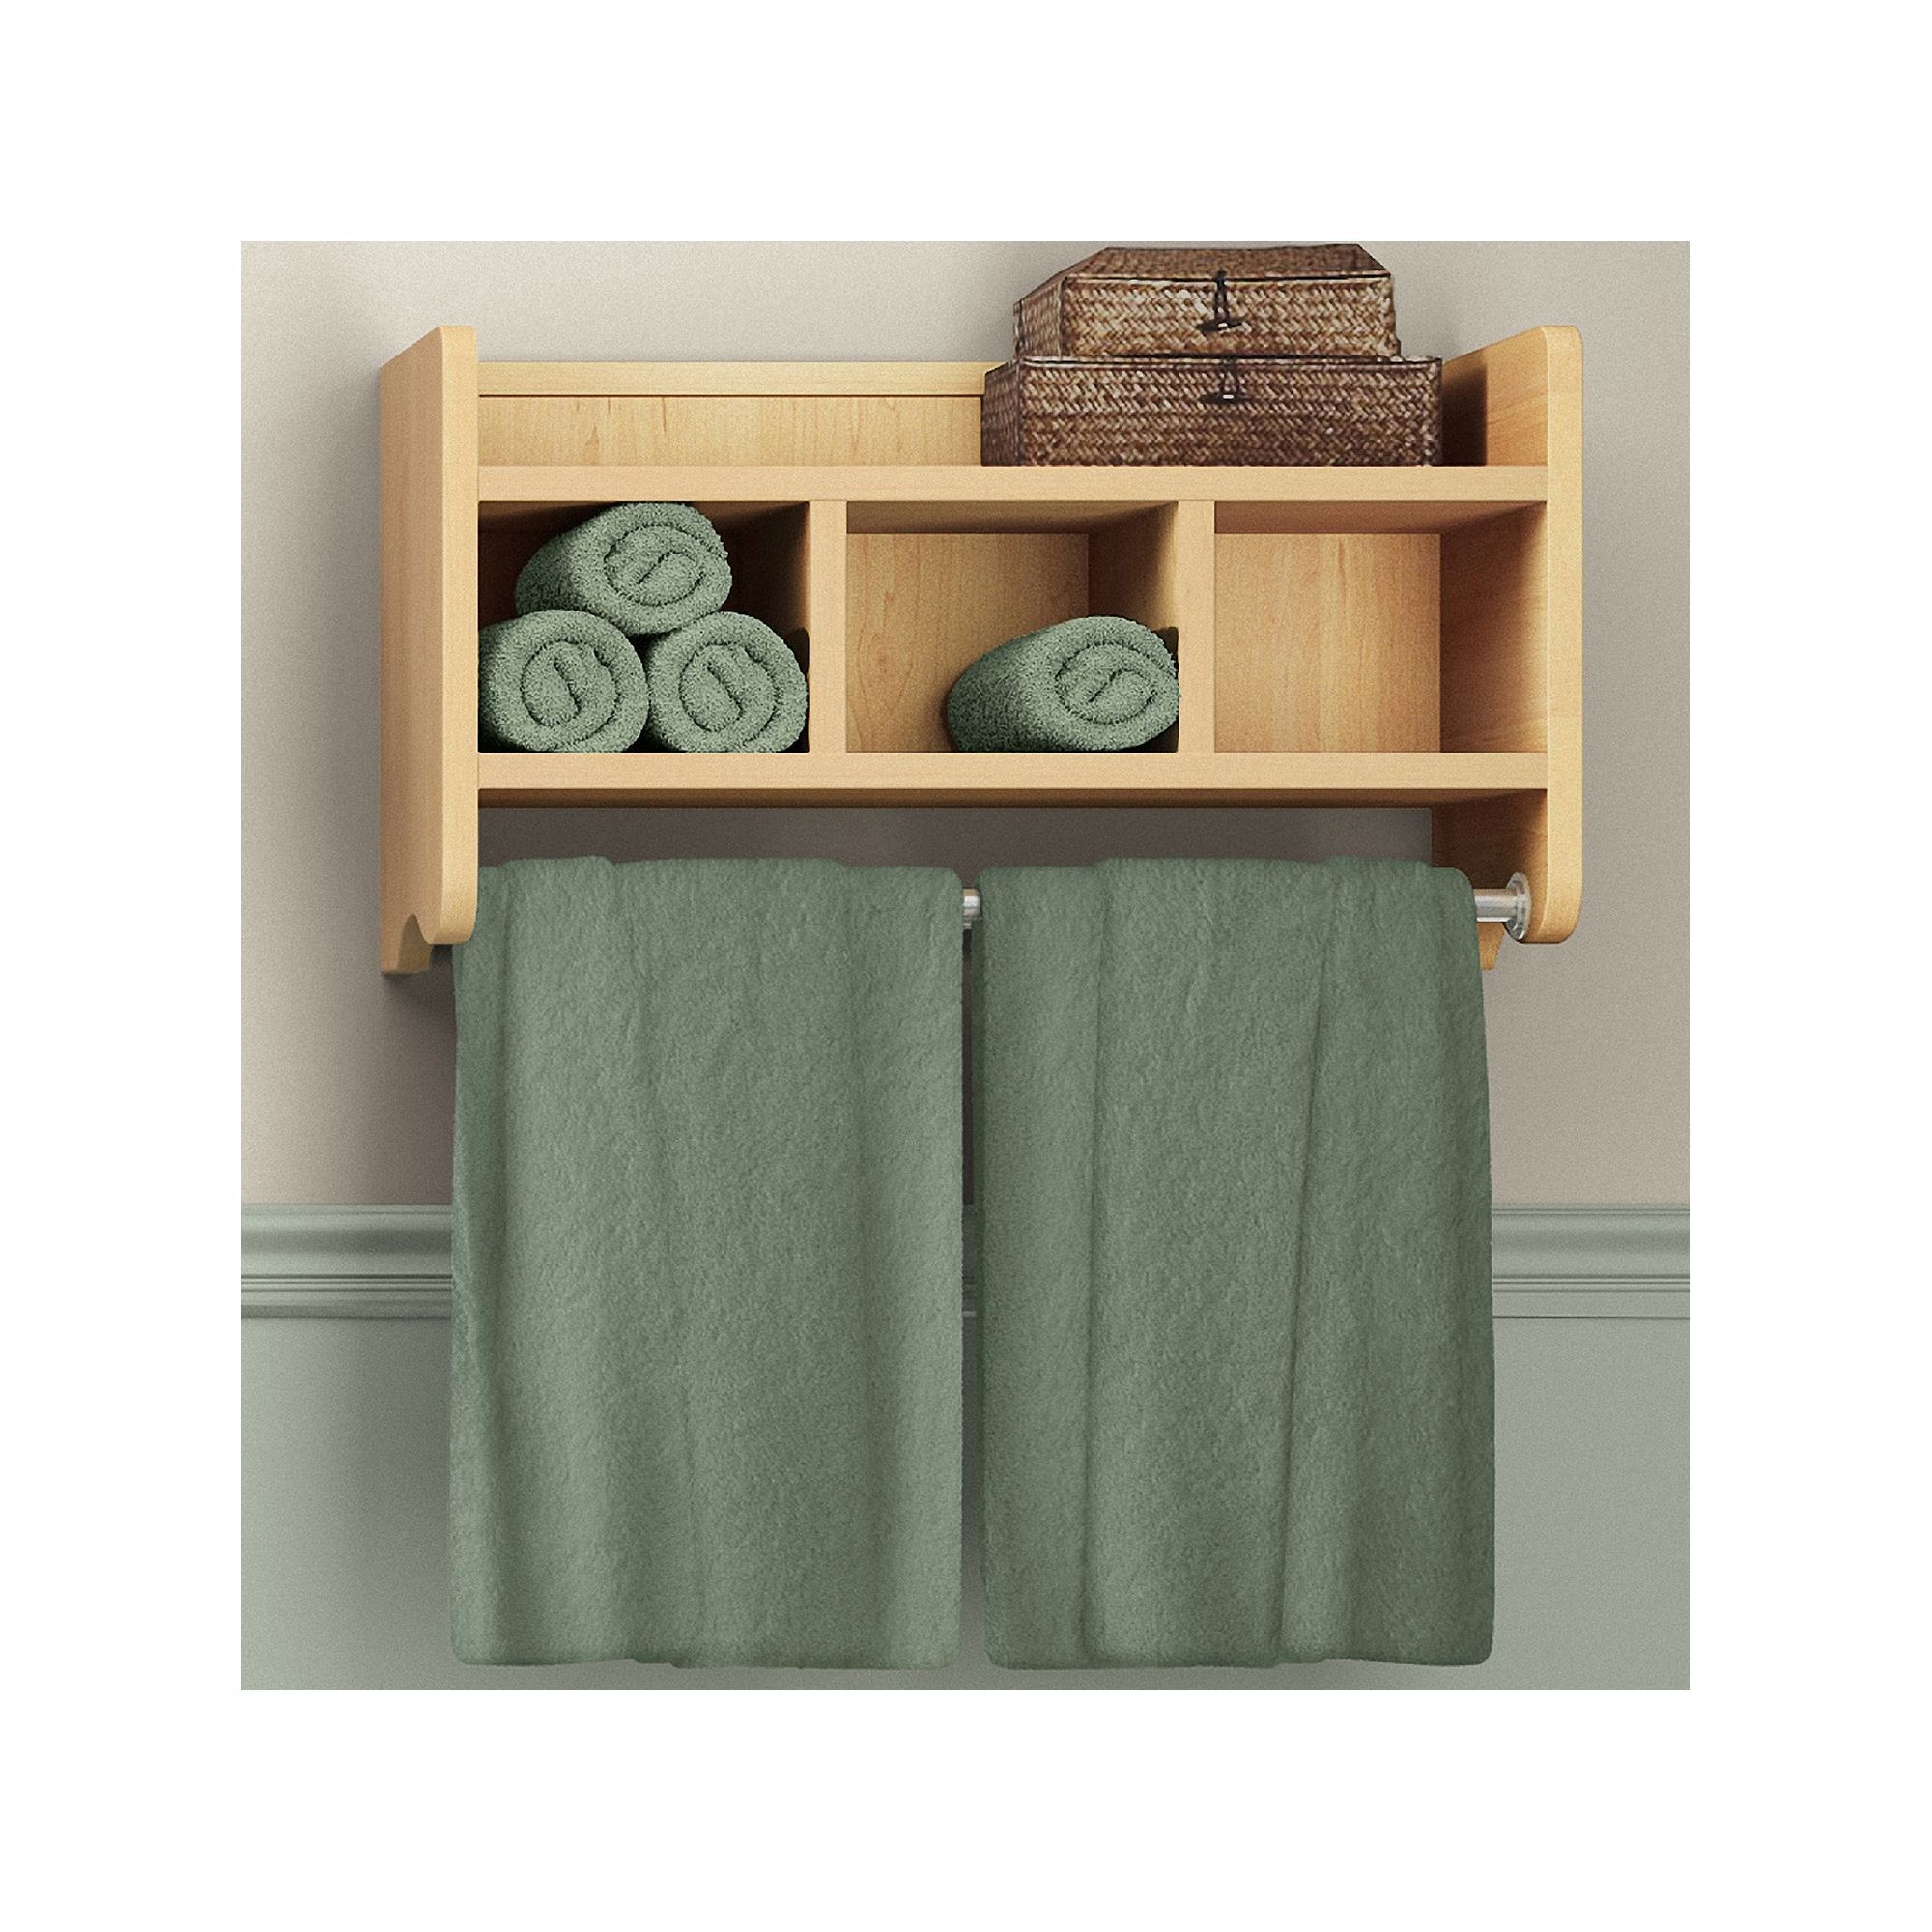 Bolton Bathroom Storage Cubby & Towel Bar Wall Shelf, Brown | Towels ...